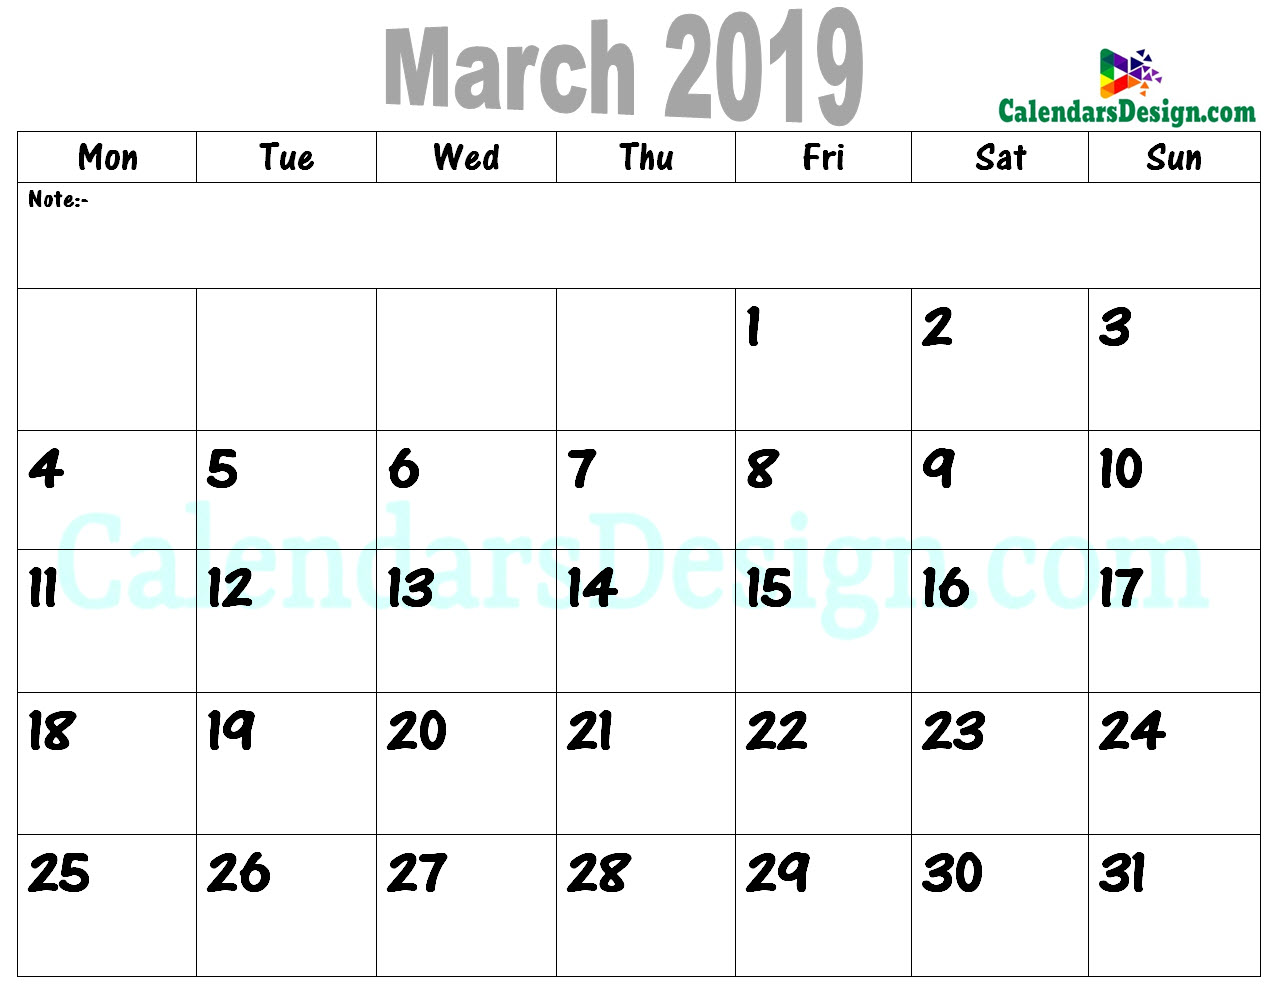 picture about Calendar March Printable named March 2019 Calendar PDF